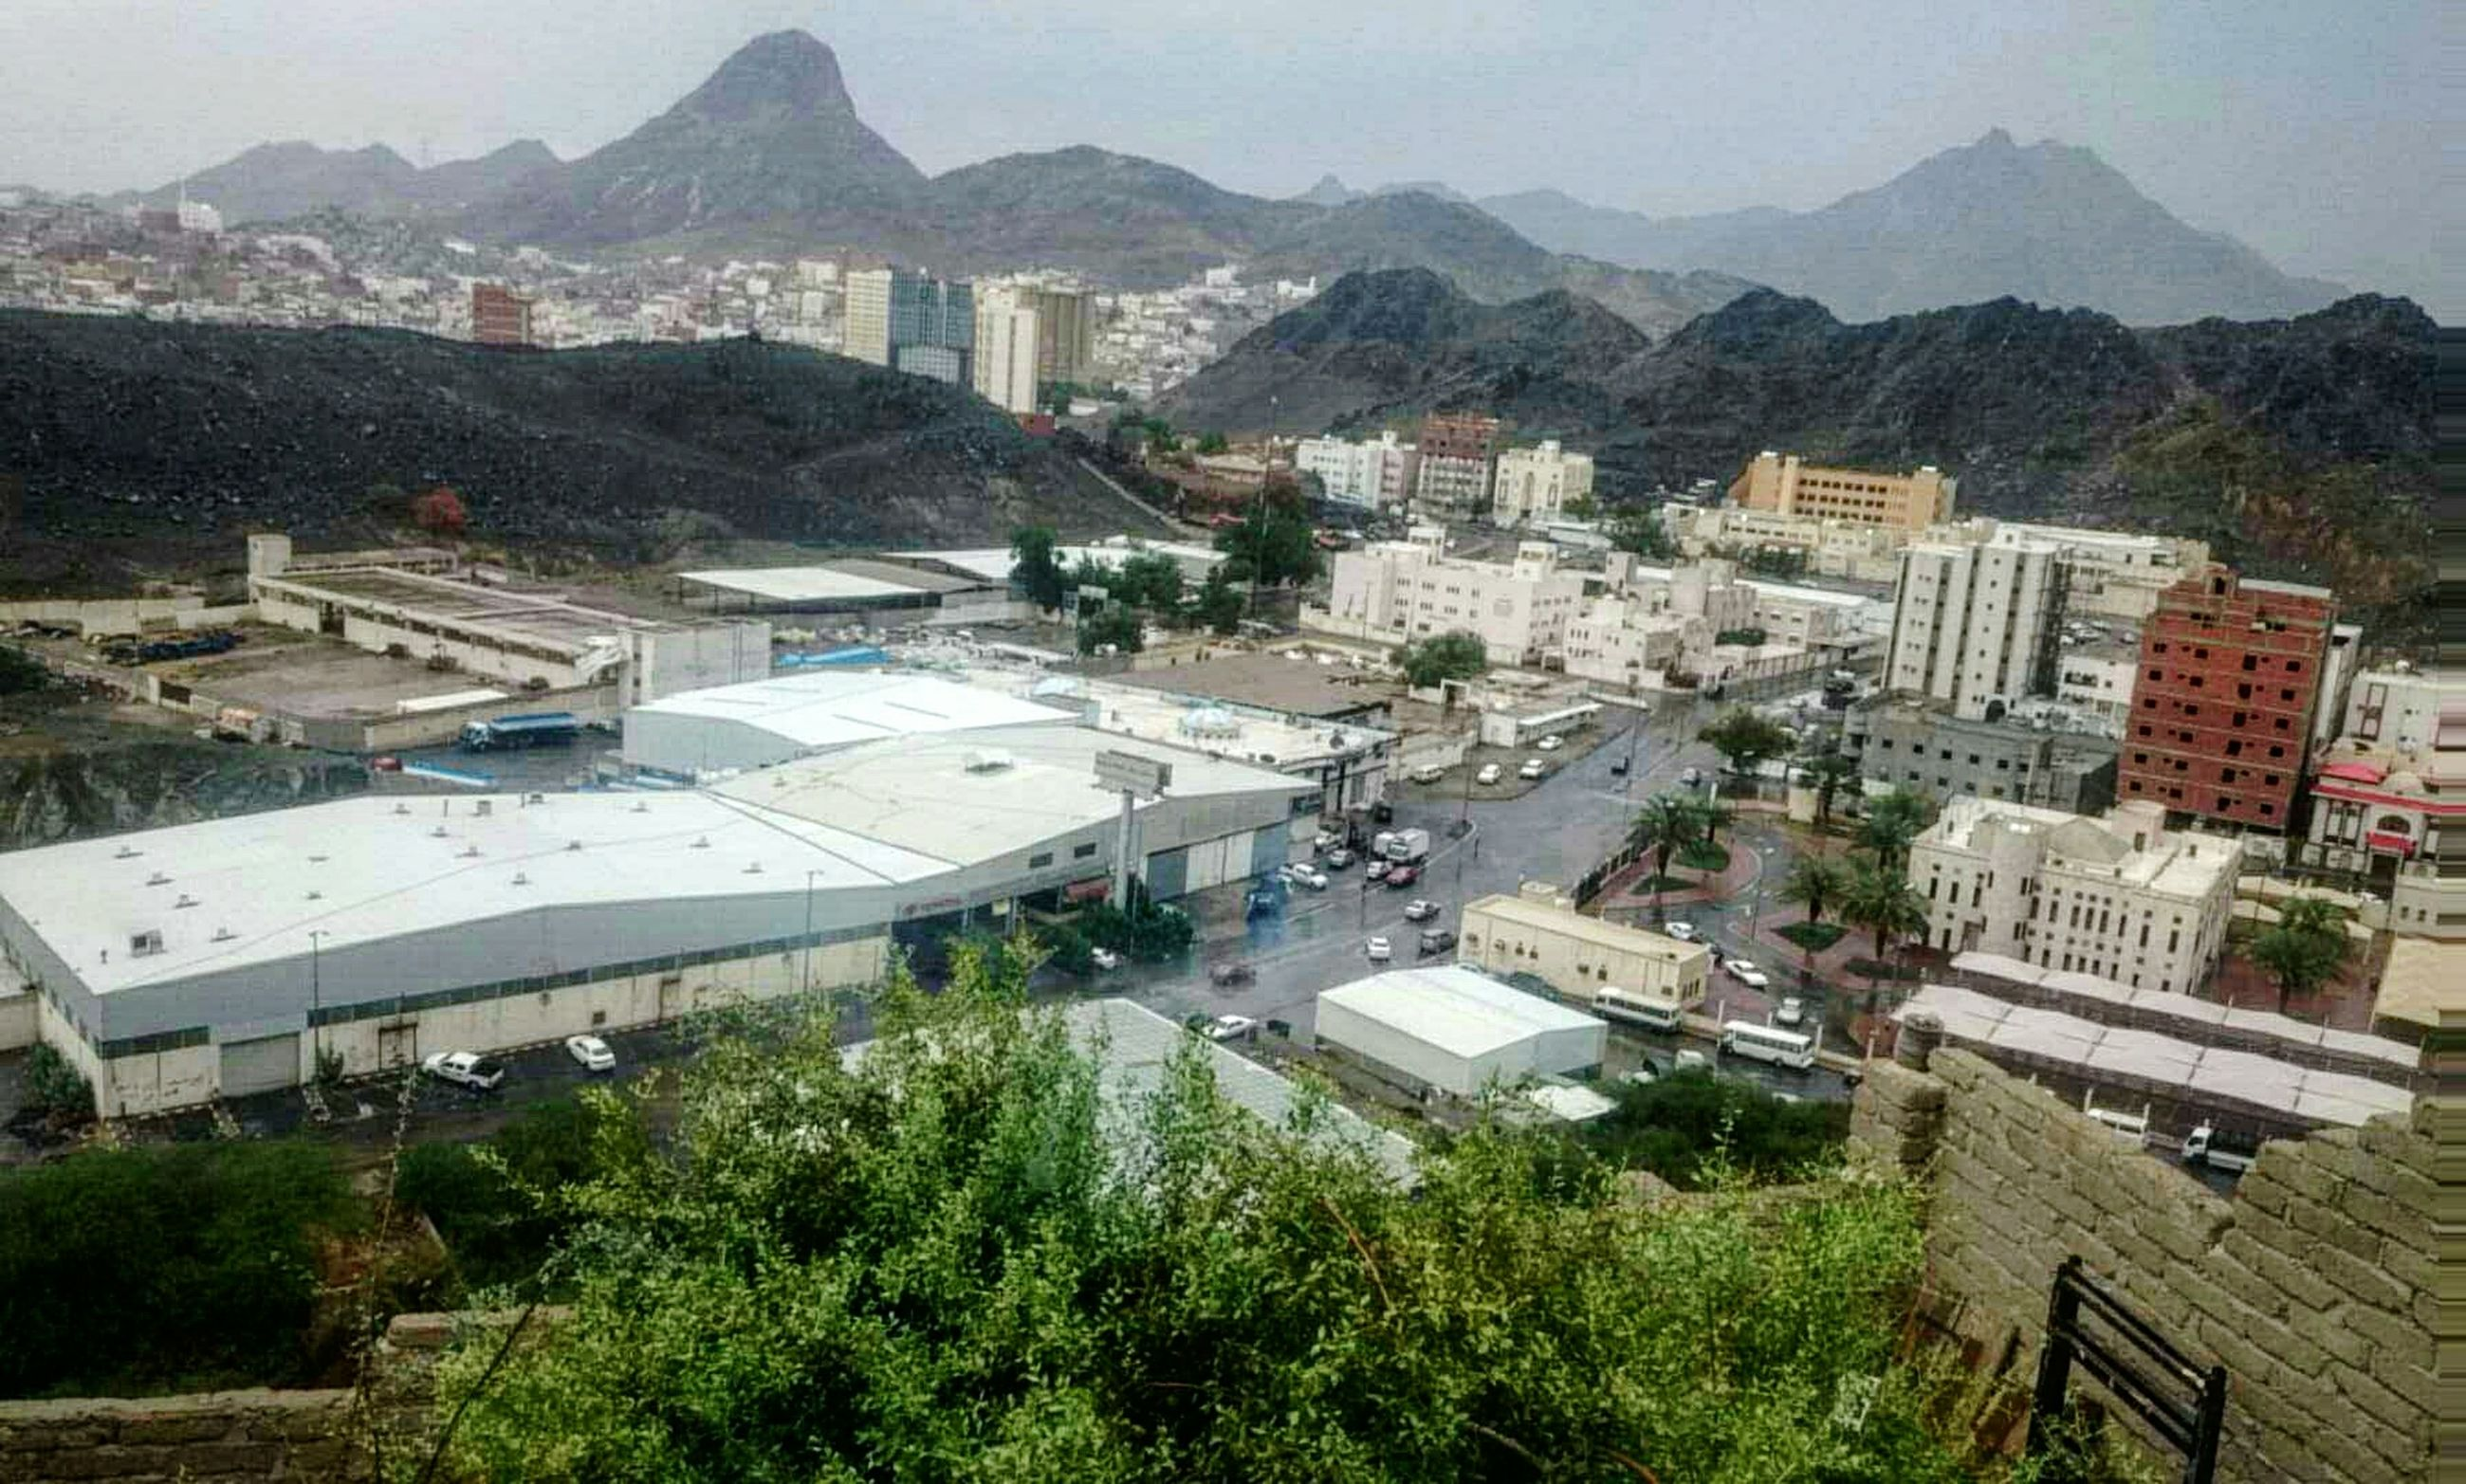 building exterior, architecture, built structure, mountain, high angle view, cityscape, city, residential district, tree, residential building, crowded, residential structure, mountain range, house, town, townscape, landscape, community, human settlement, sky